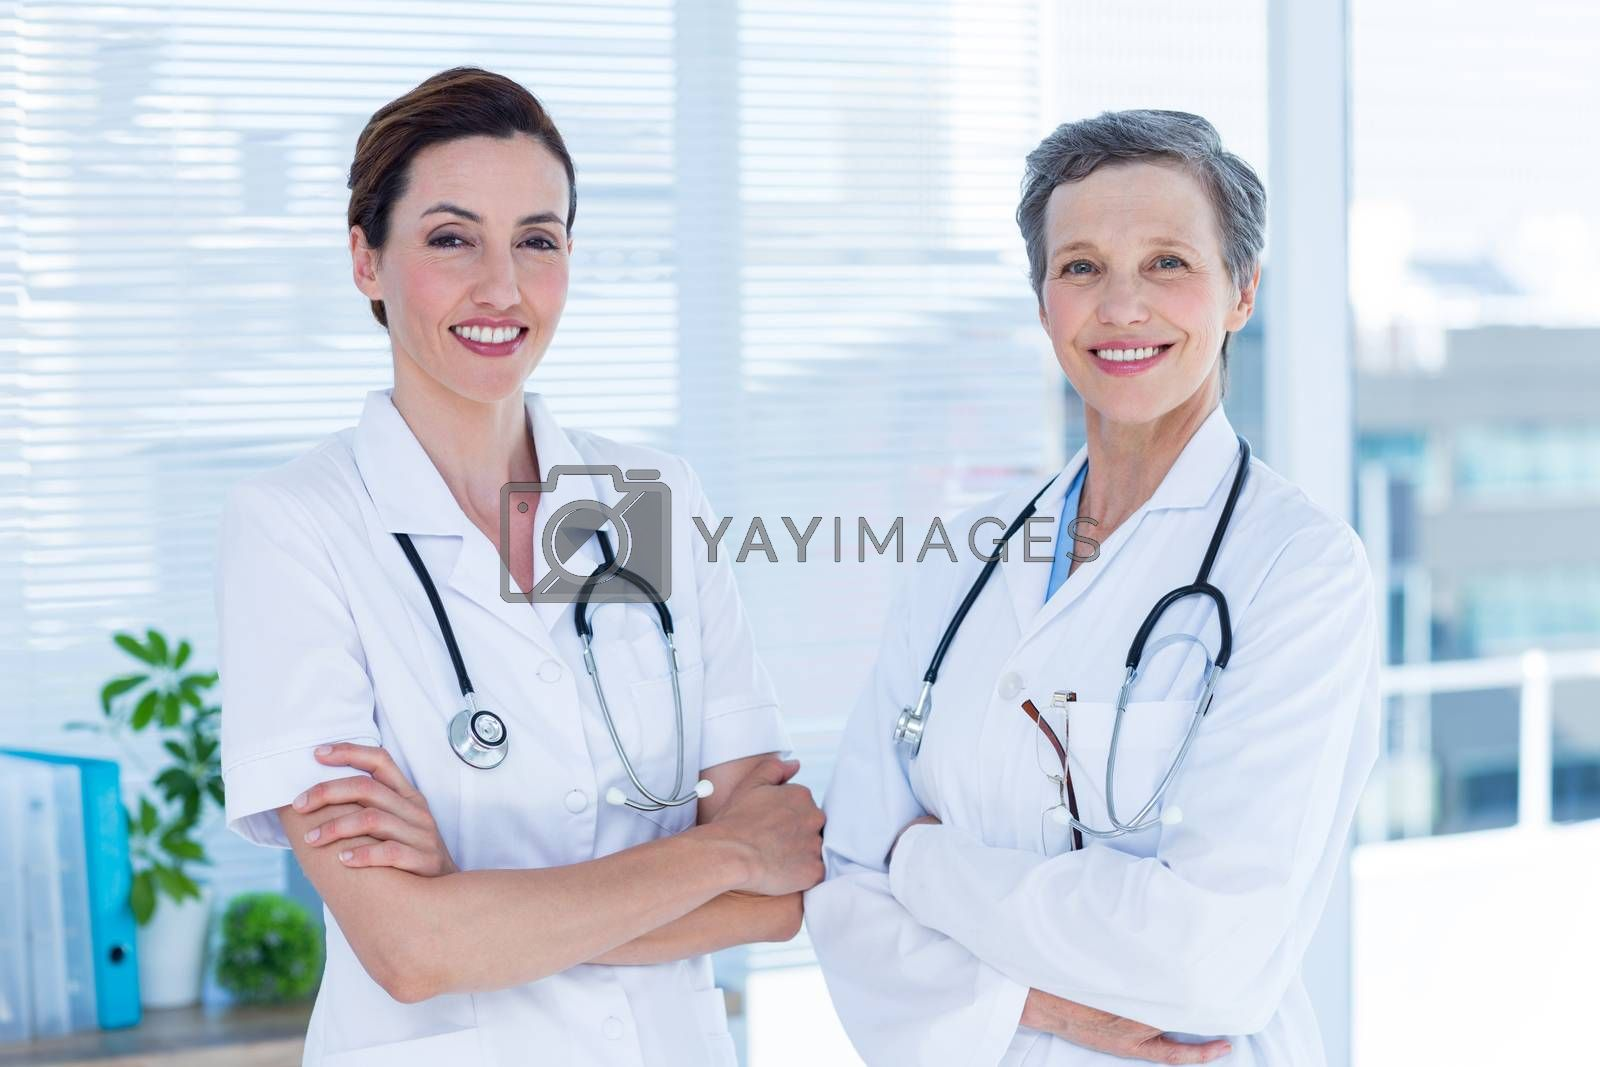 Royalty free image of Portrait of smiling medical colleagues with arms crossed by Wavebreakmedia